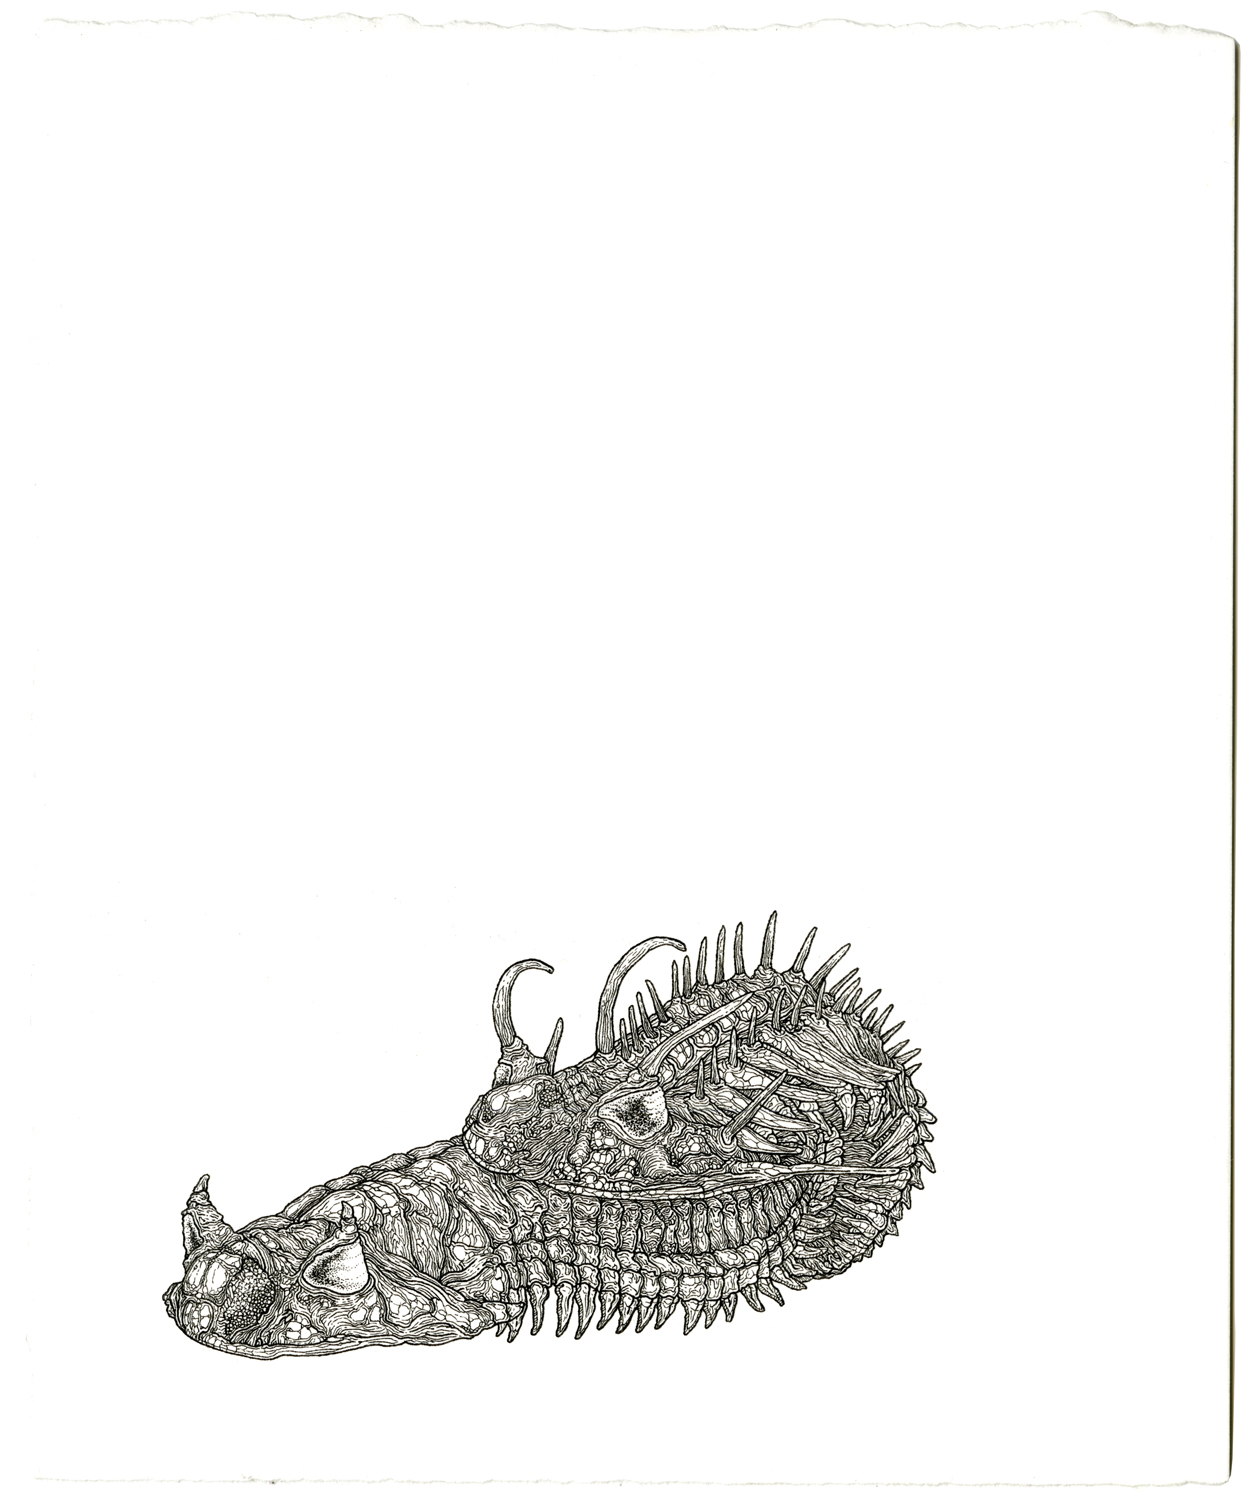 trilobites , ink on paper, 8.5in. x 7in., 2009